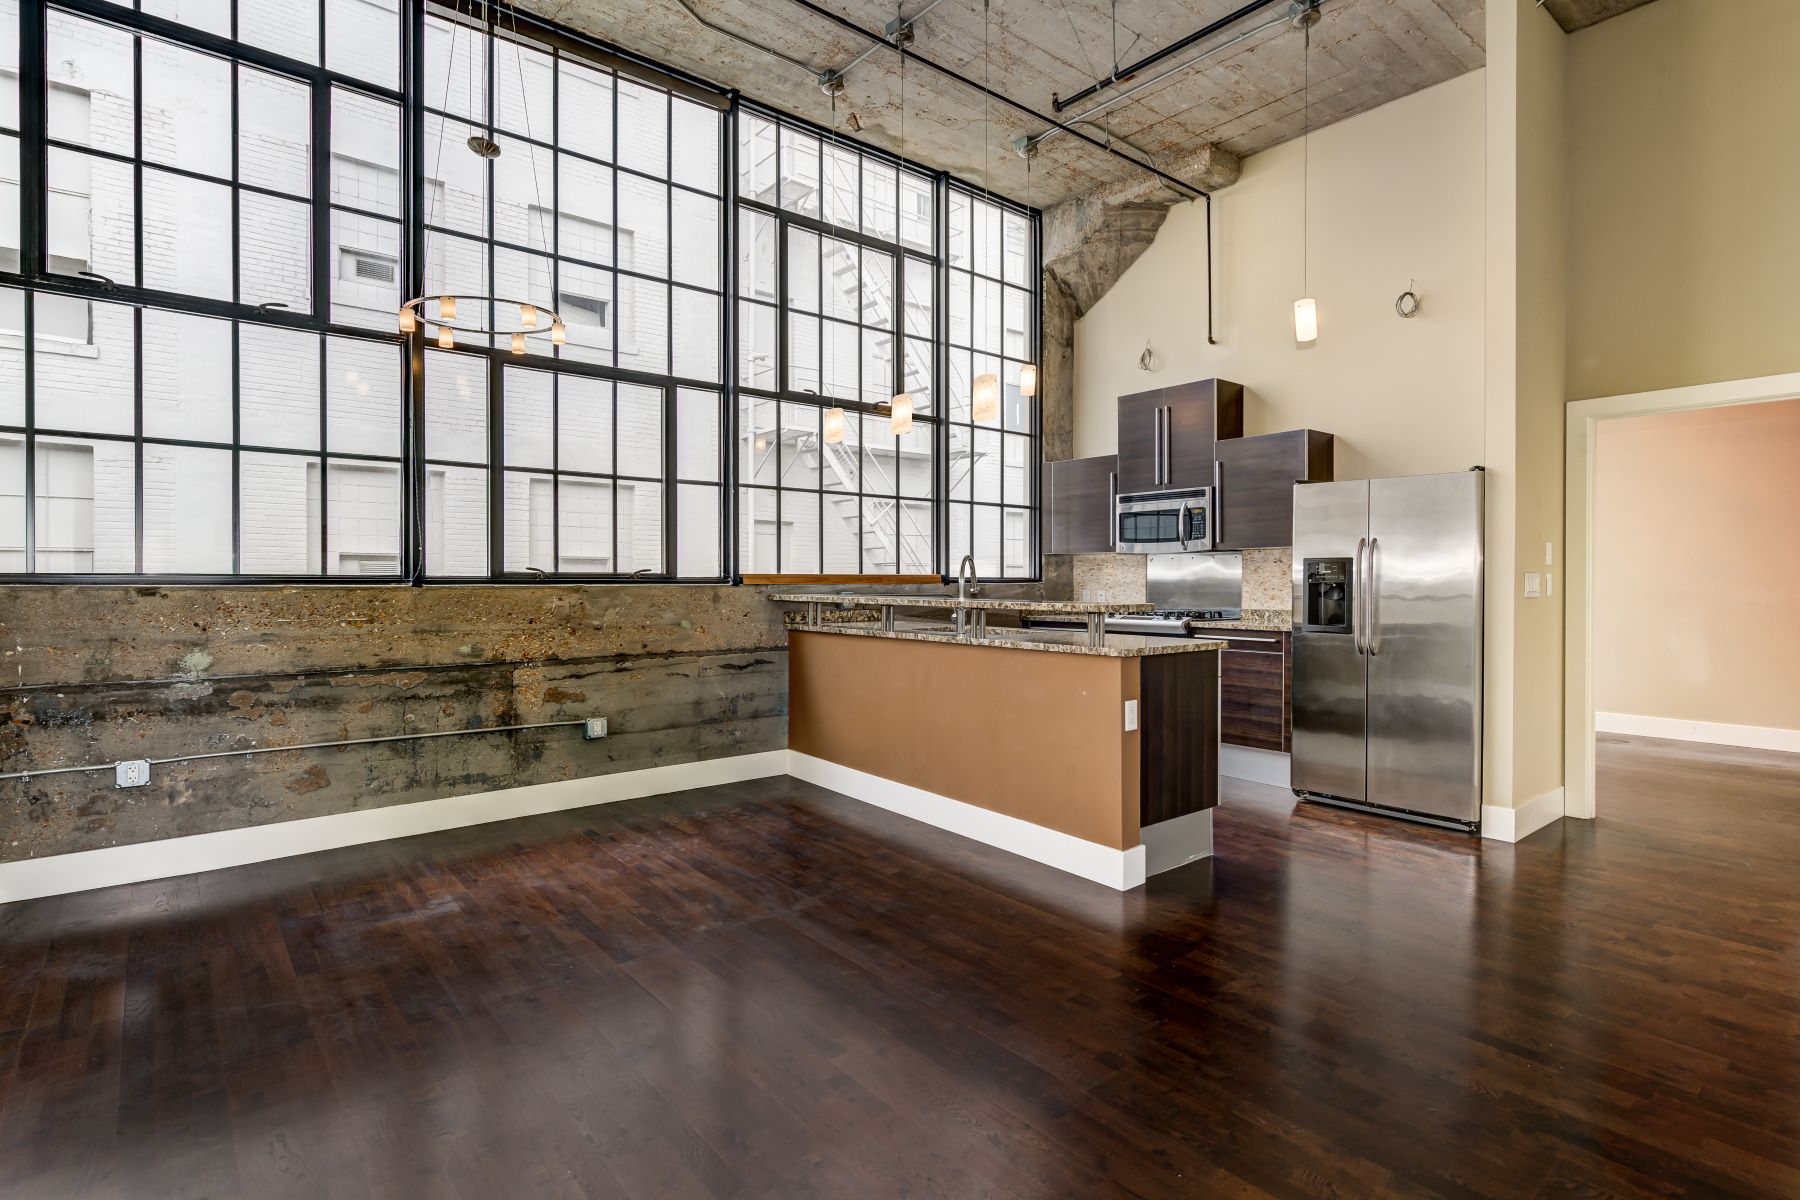 Additional photo for property listing at West End Lofts #526 4100 Forest Park Ave #526 St. Louis, Missouri 63108 United States